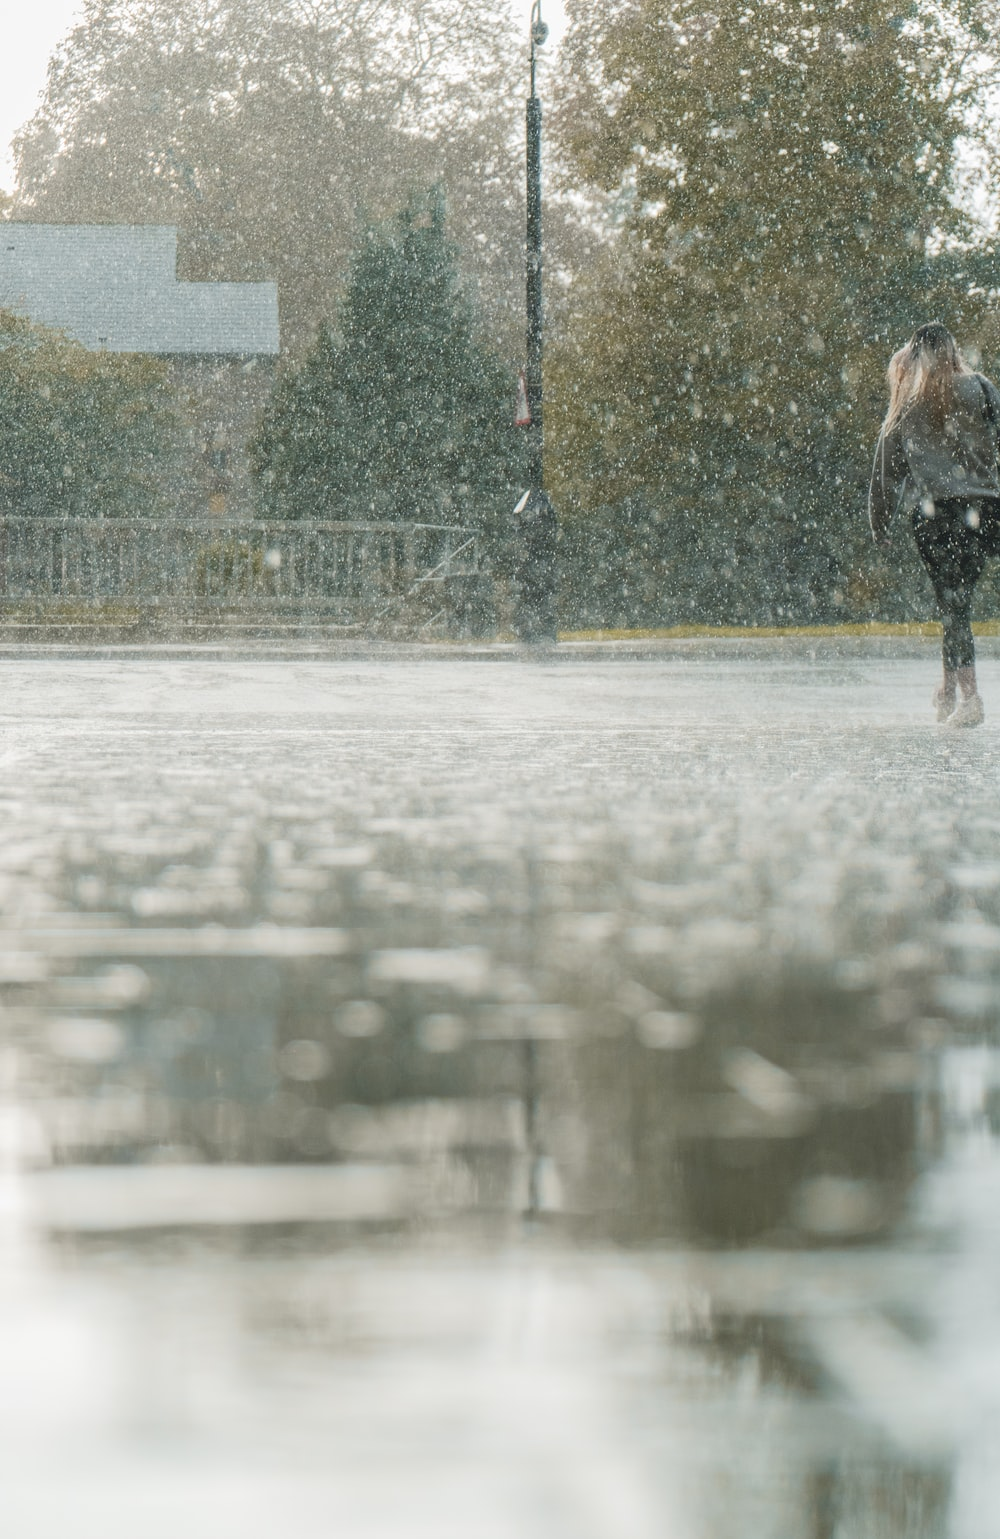 person in black jacket walking on wet road during daytime